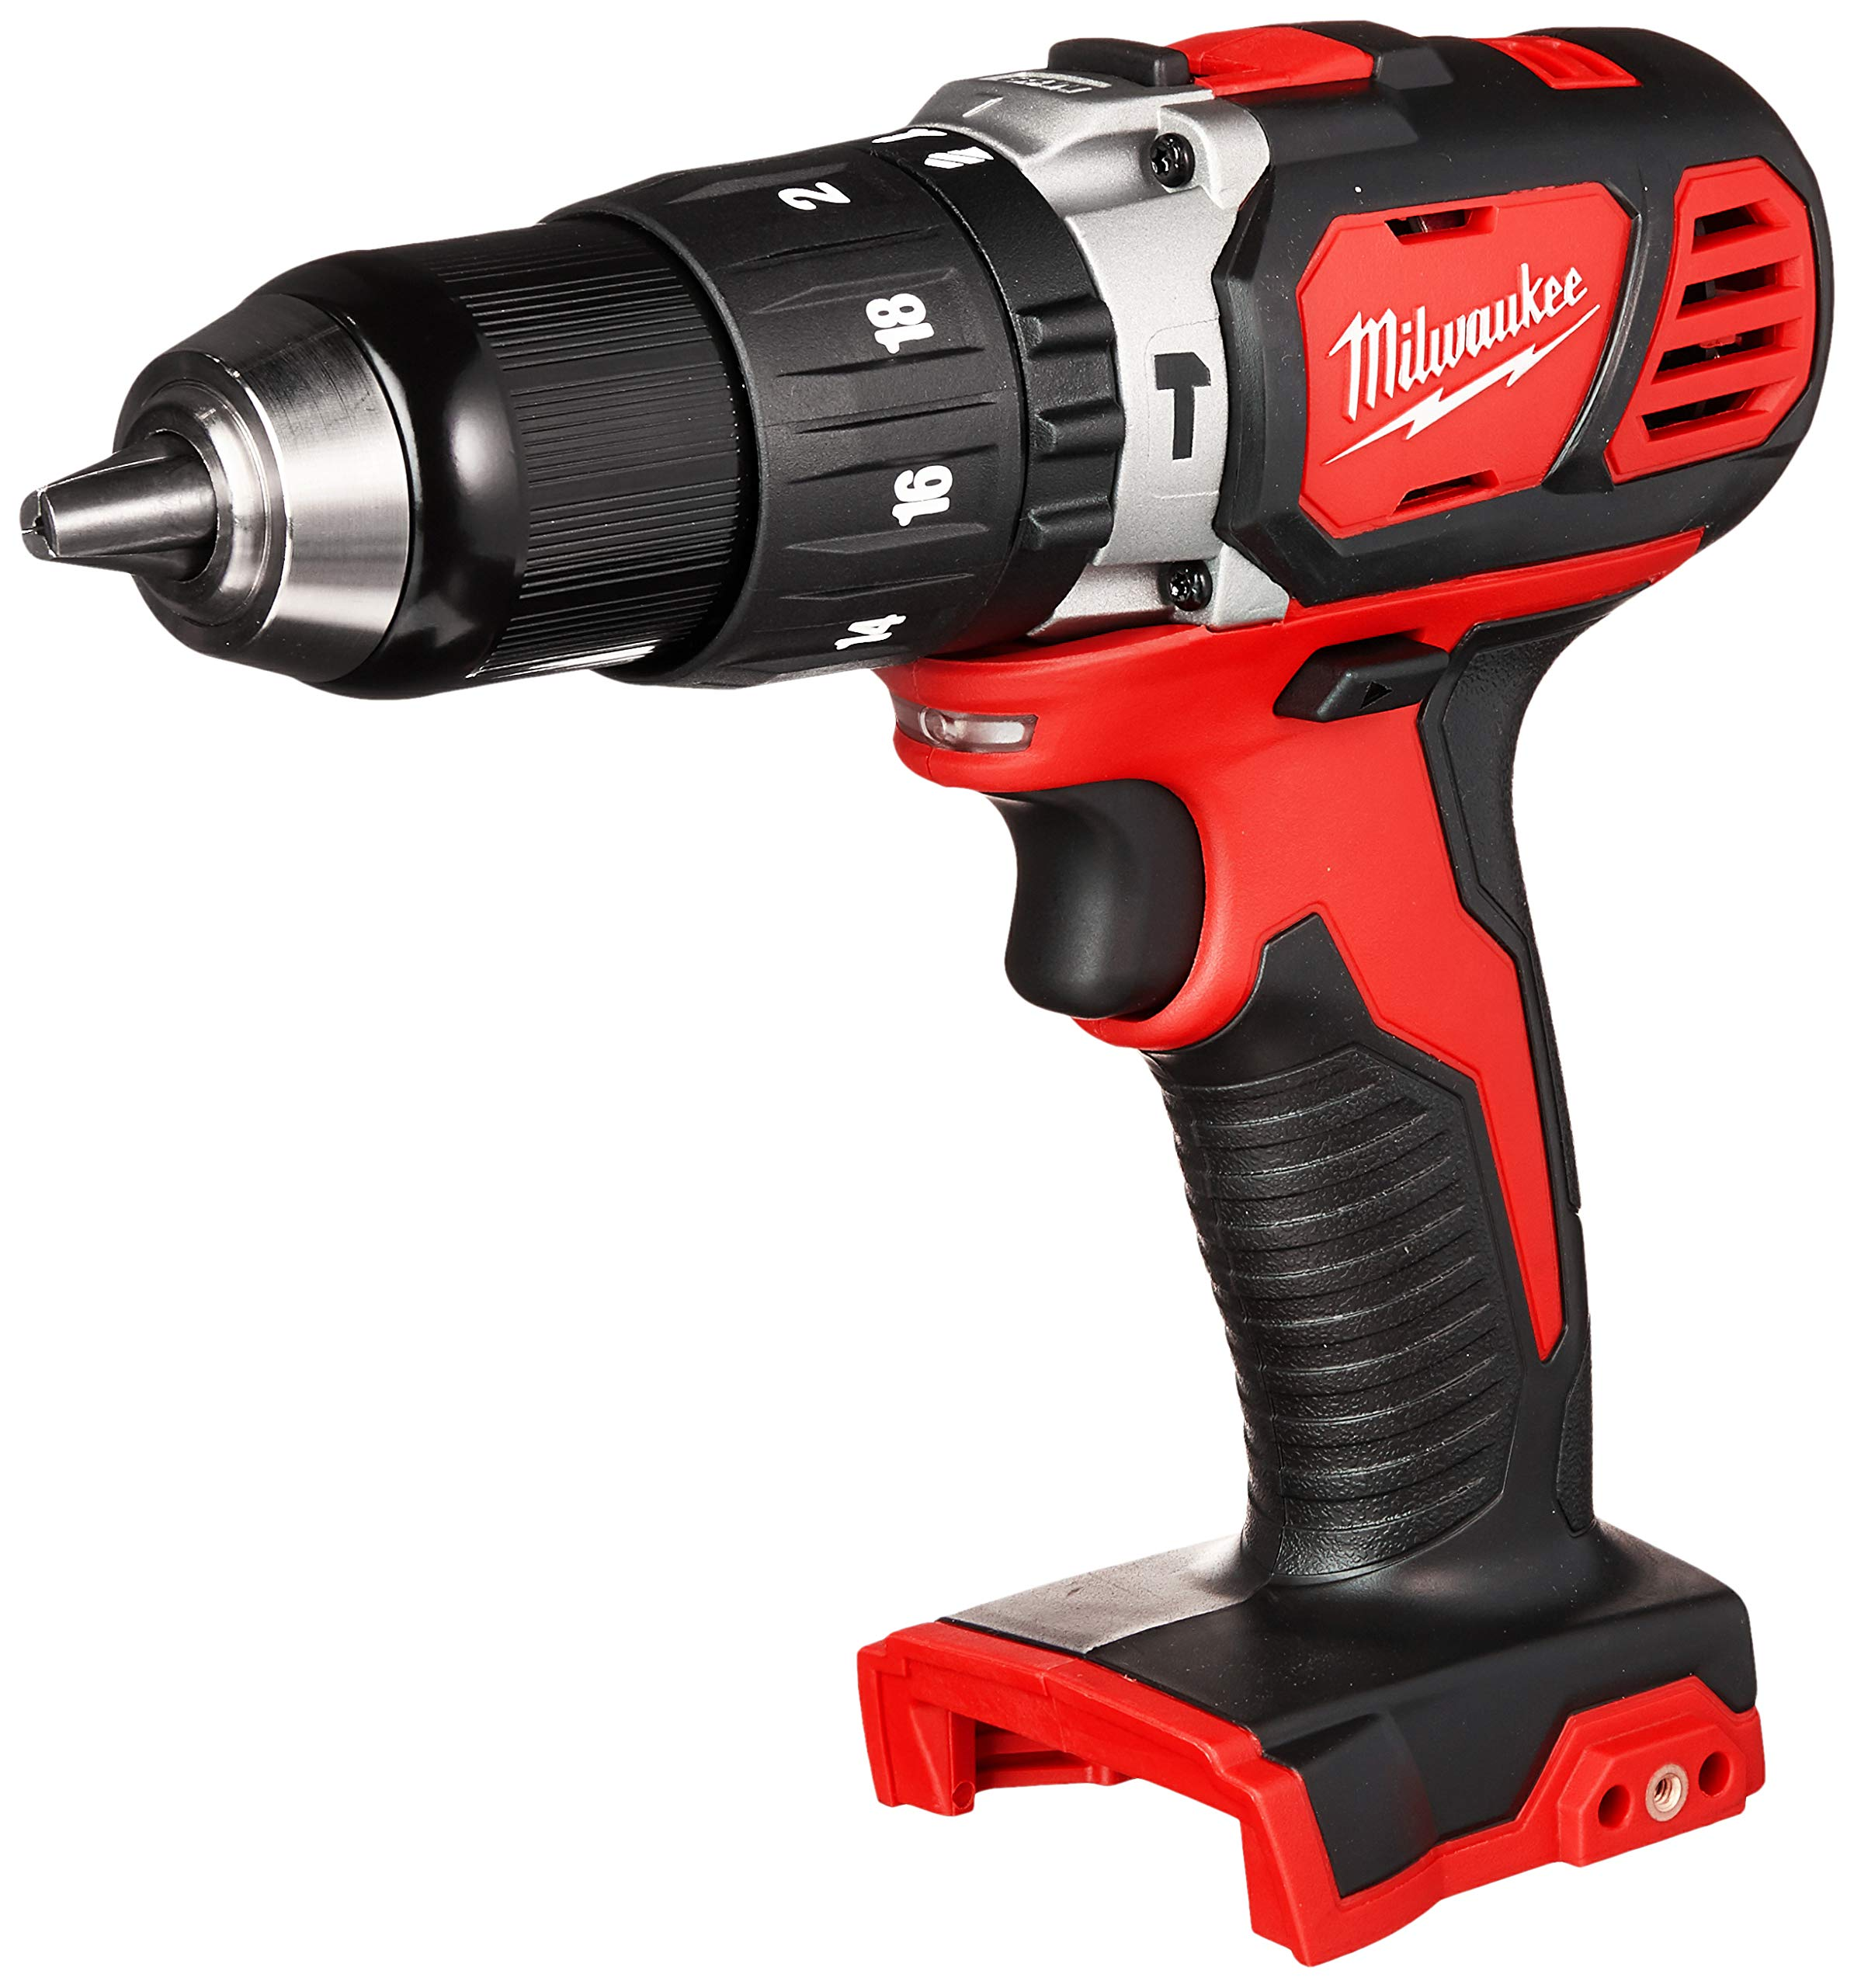 Milwaukee 2607-20 1/2 Inch 1,800 RPM 18V Lithium Ion Cordless Compact Hammer Drill / Driver with Textured Grip, All Metal Gear Case, and LED Lighting by Milwaukee